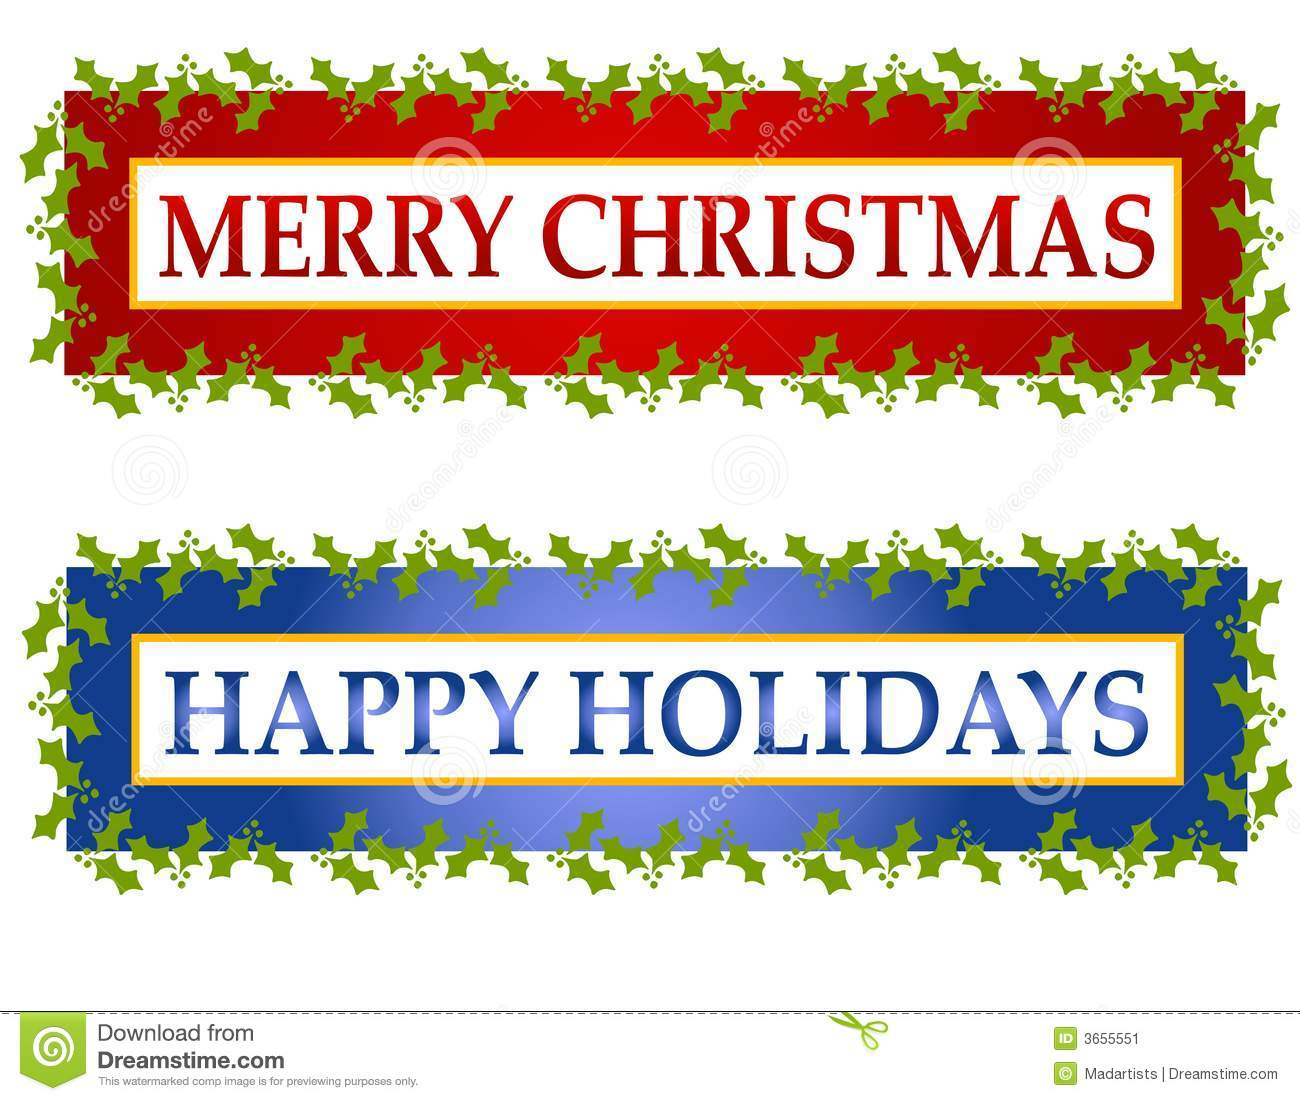 Holydays clipart banner Clip Art Clip Happy Banners